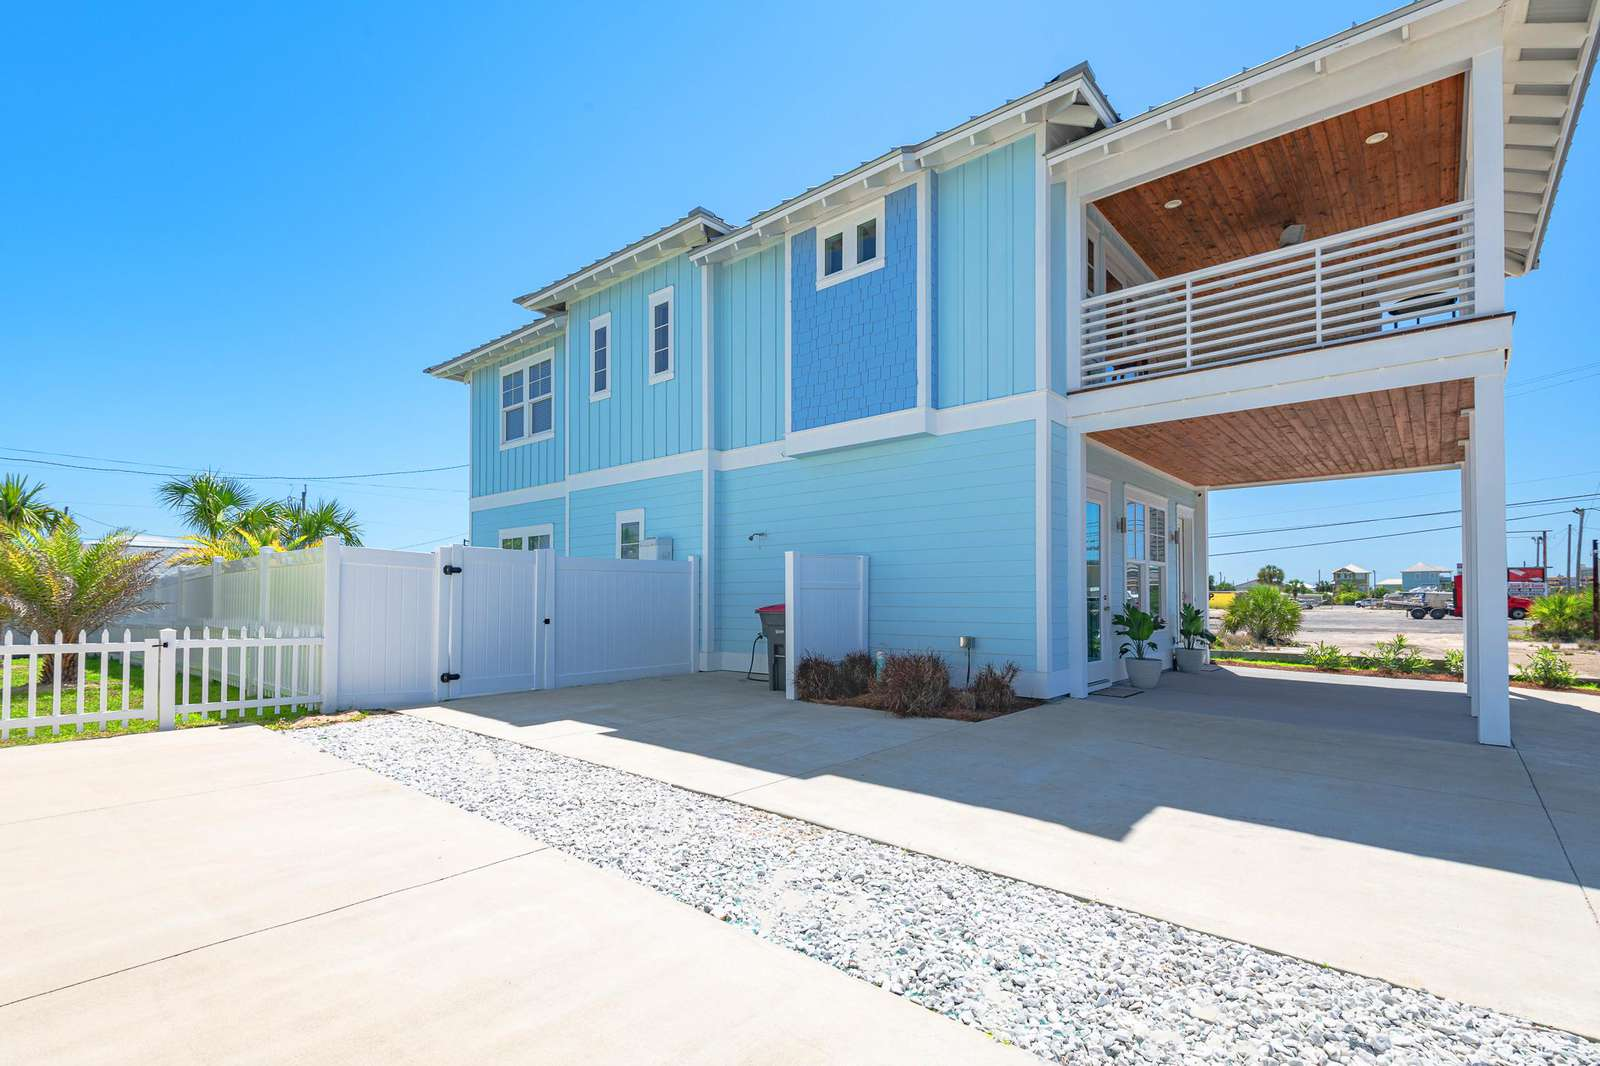 Fully stocked 4 bedroom 3.5 bath home close to the beach!